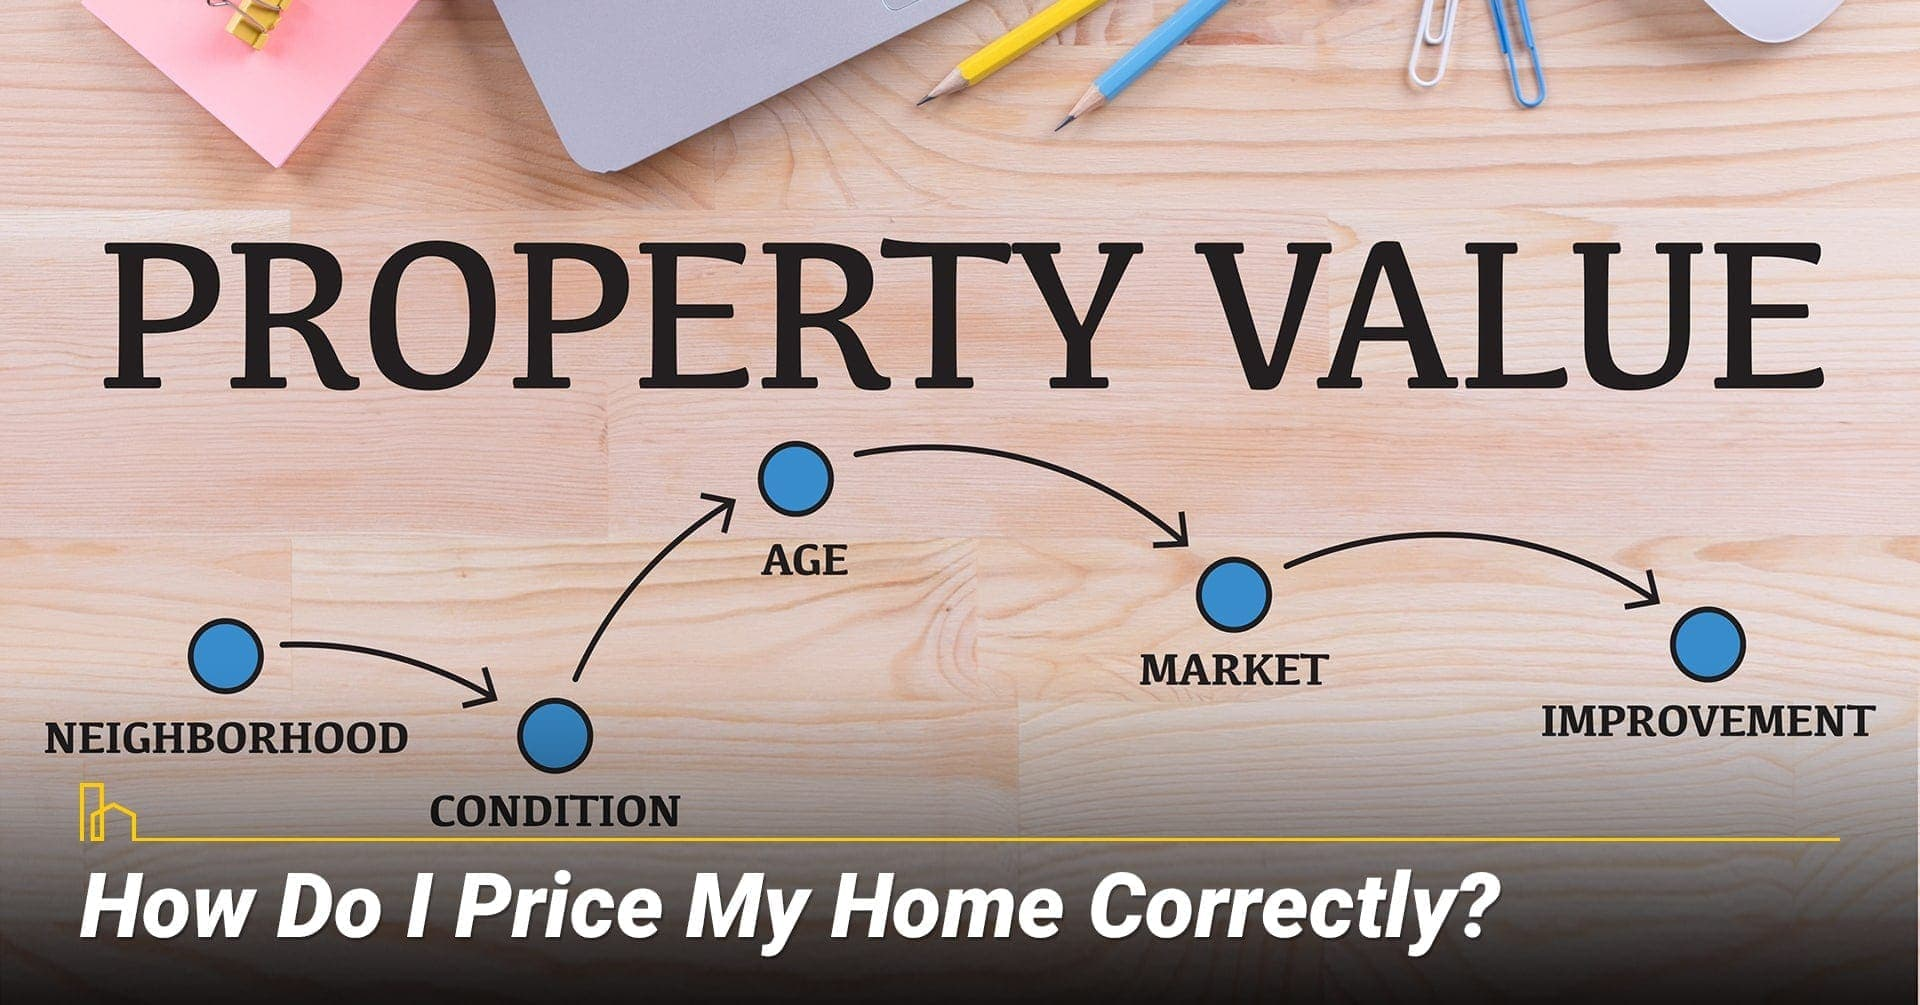 How Do I Price My Home Correctly?